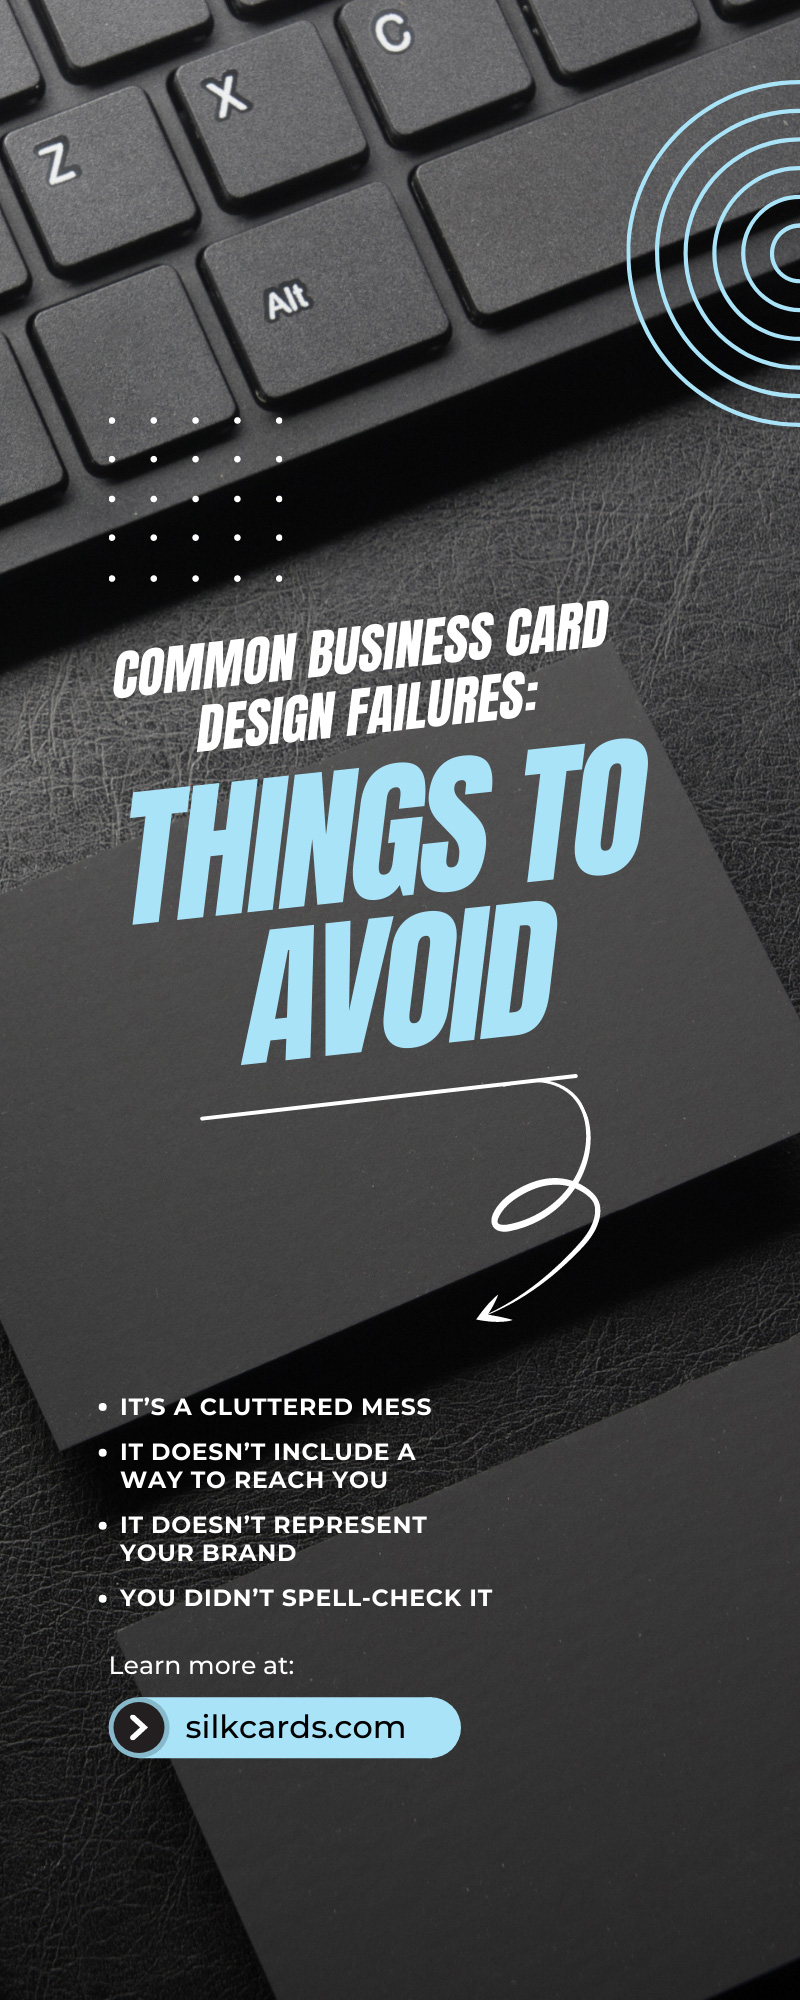 Common Business Card Design Failures: Things To Avoid